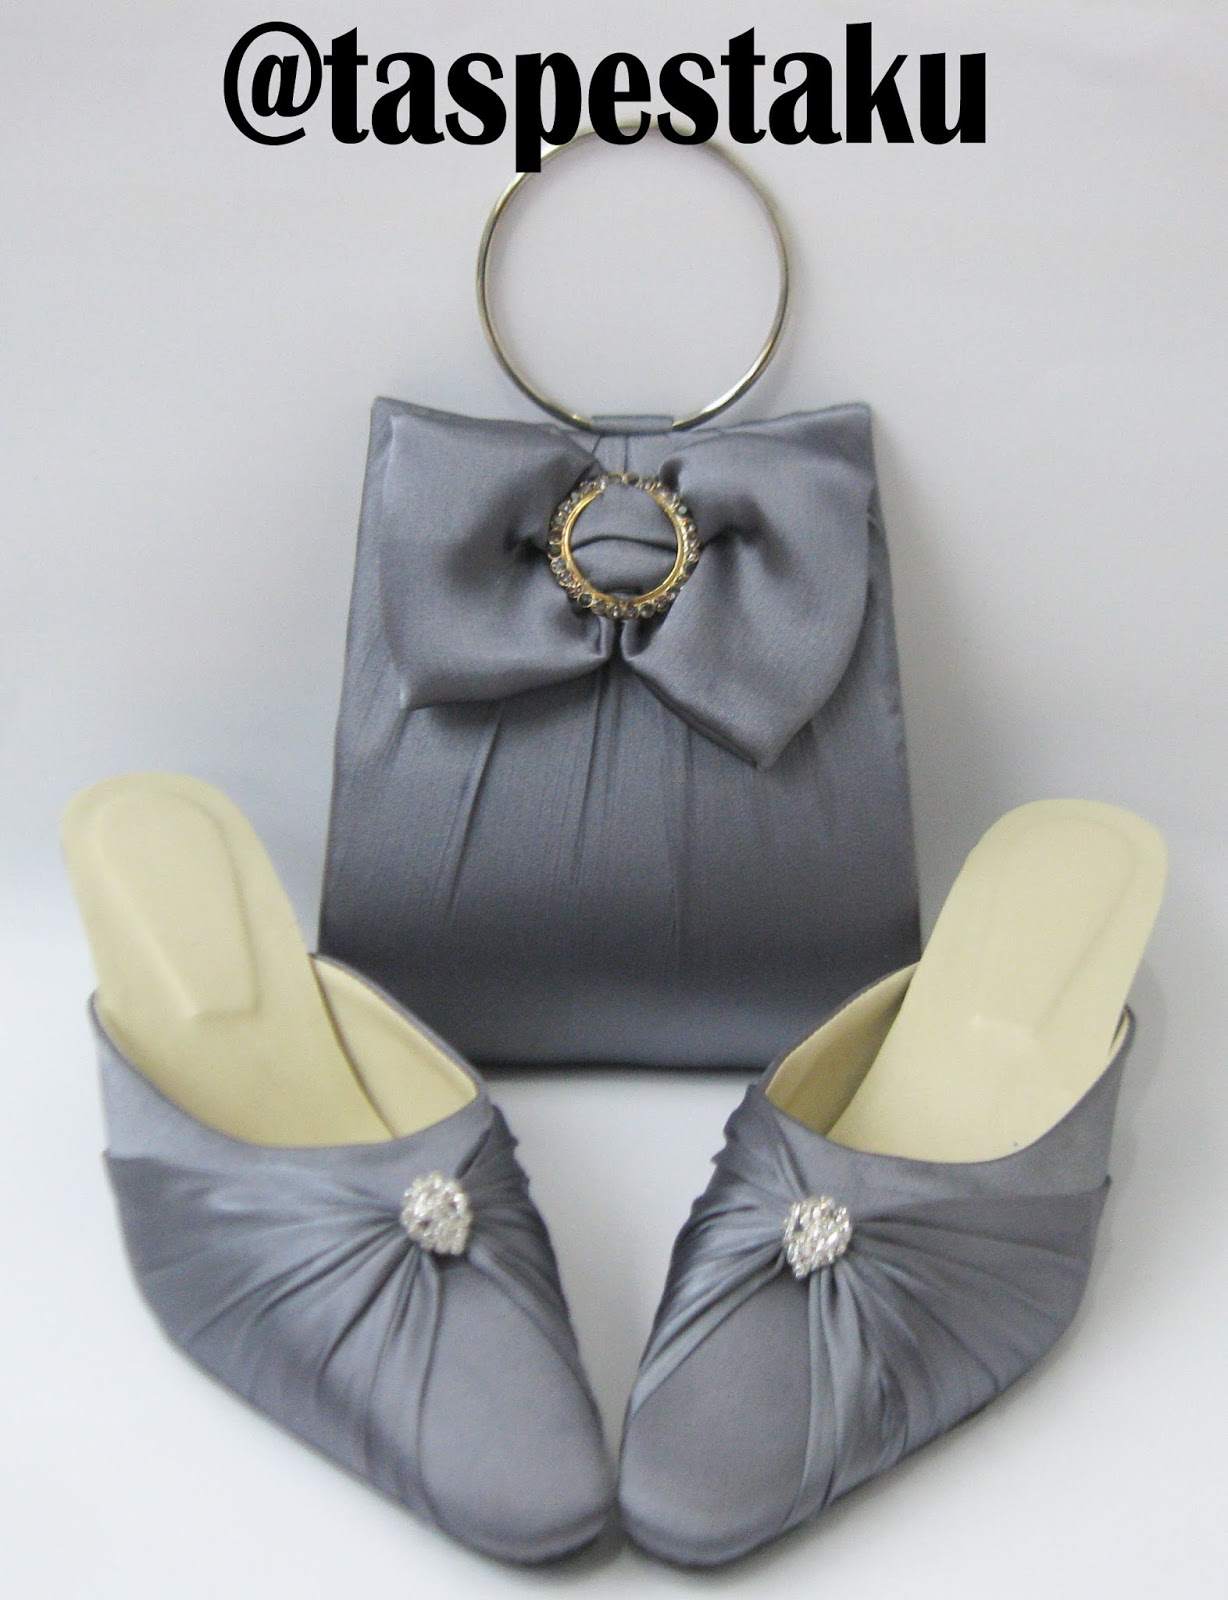 Tas Pesta - Clutch Bag @taspestaku: Polish Metalic Tas ...